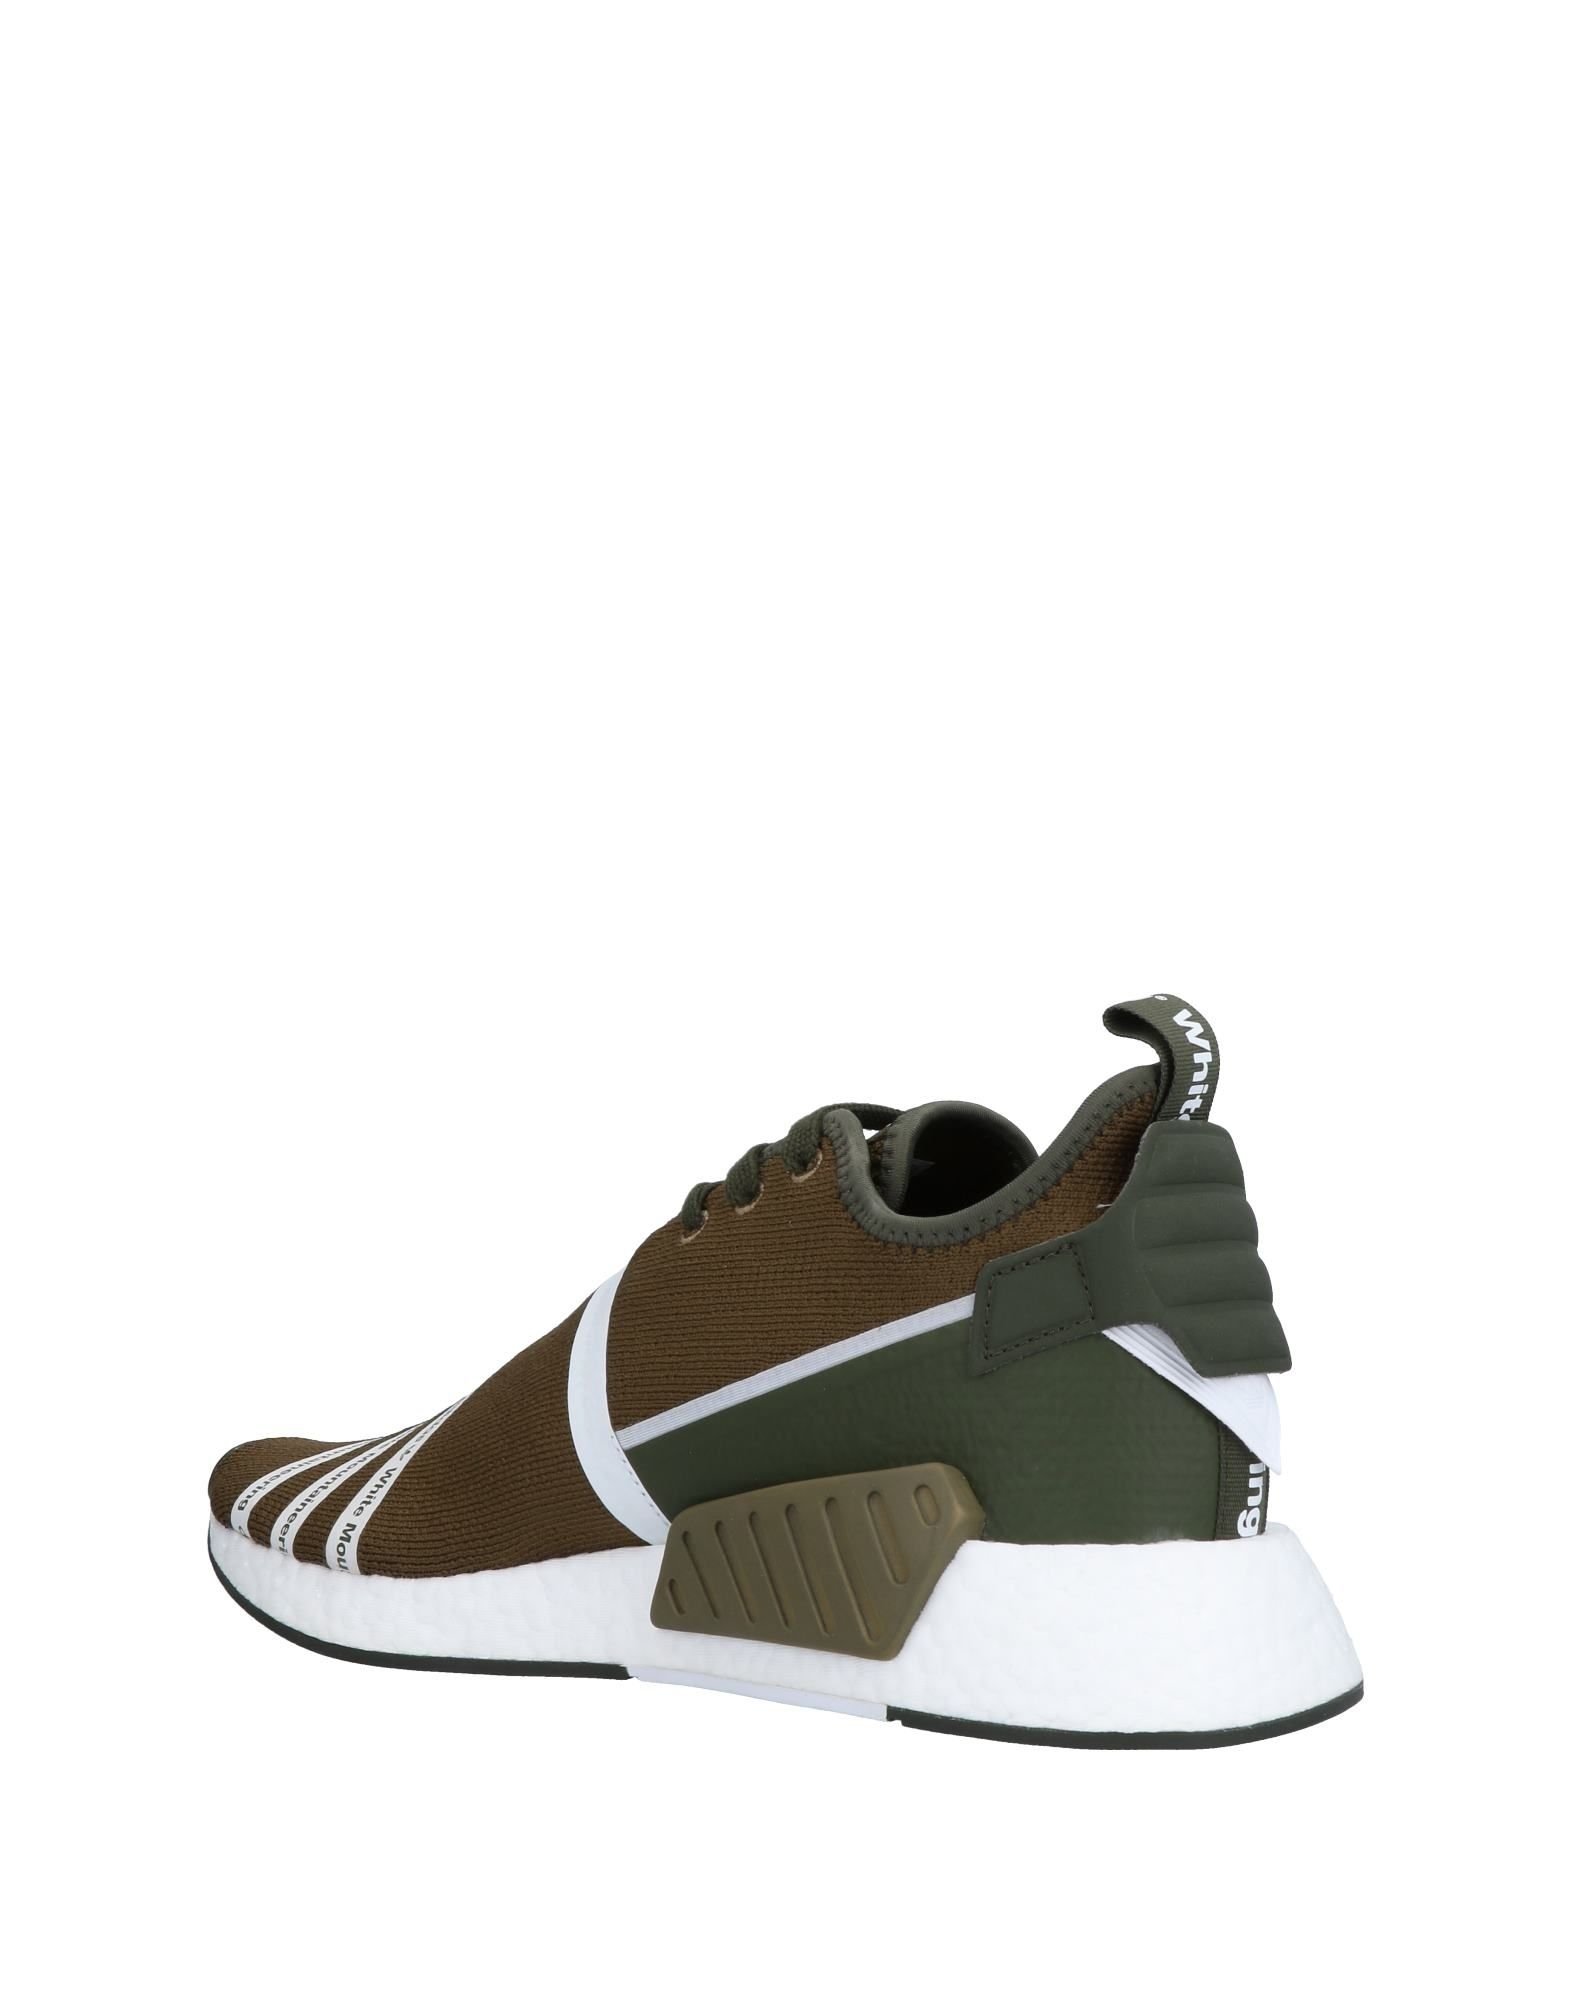 Adidas Originals By White Mountaineering Sneakers By - Men Adidas Originals By Sneakers White Mountaineering Sneakers online on  Australia - 11500889EU 2ffe01